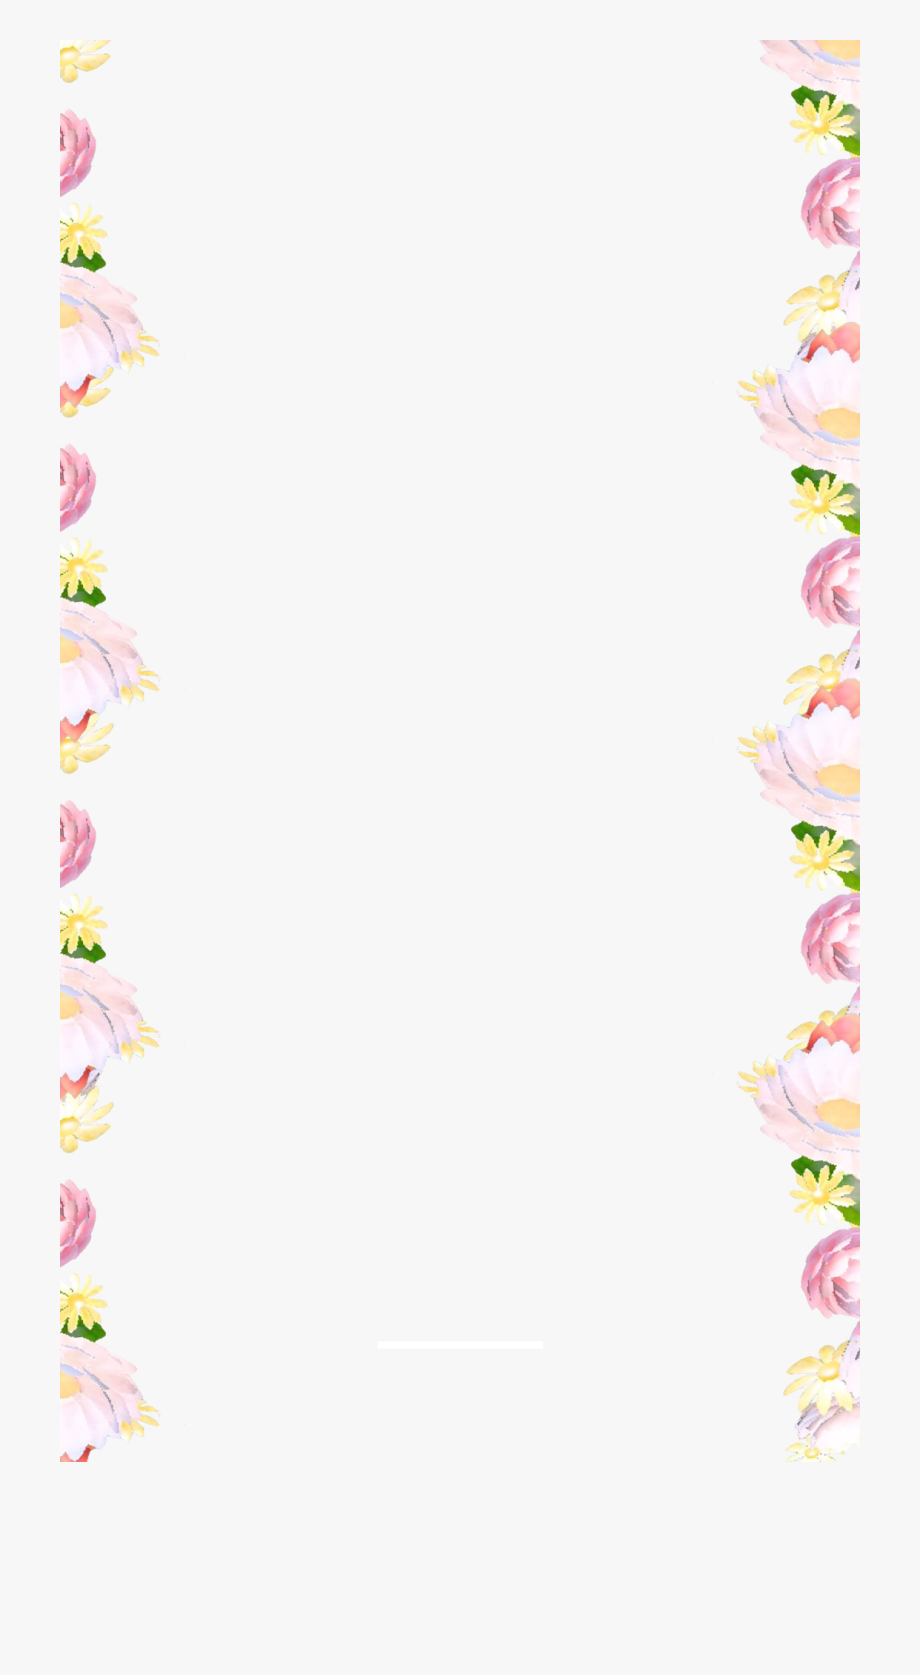 Flower Border Snapchat Filter #2156446.